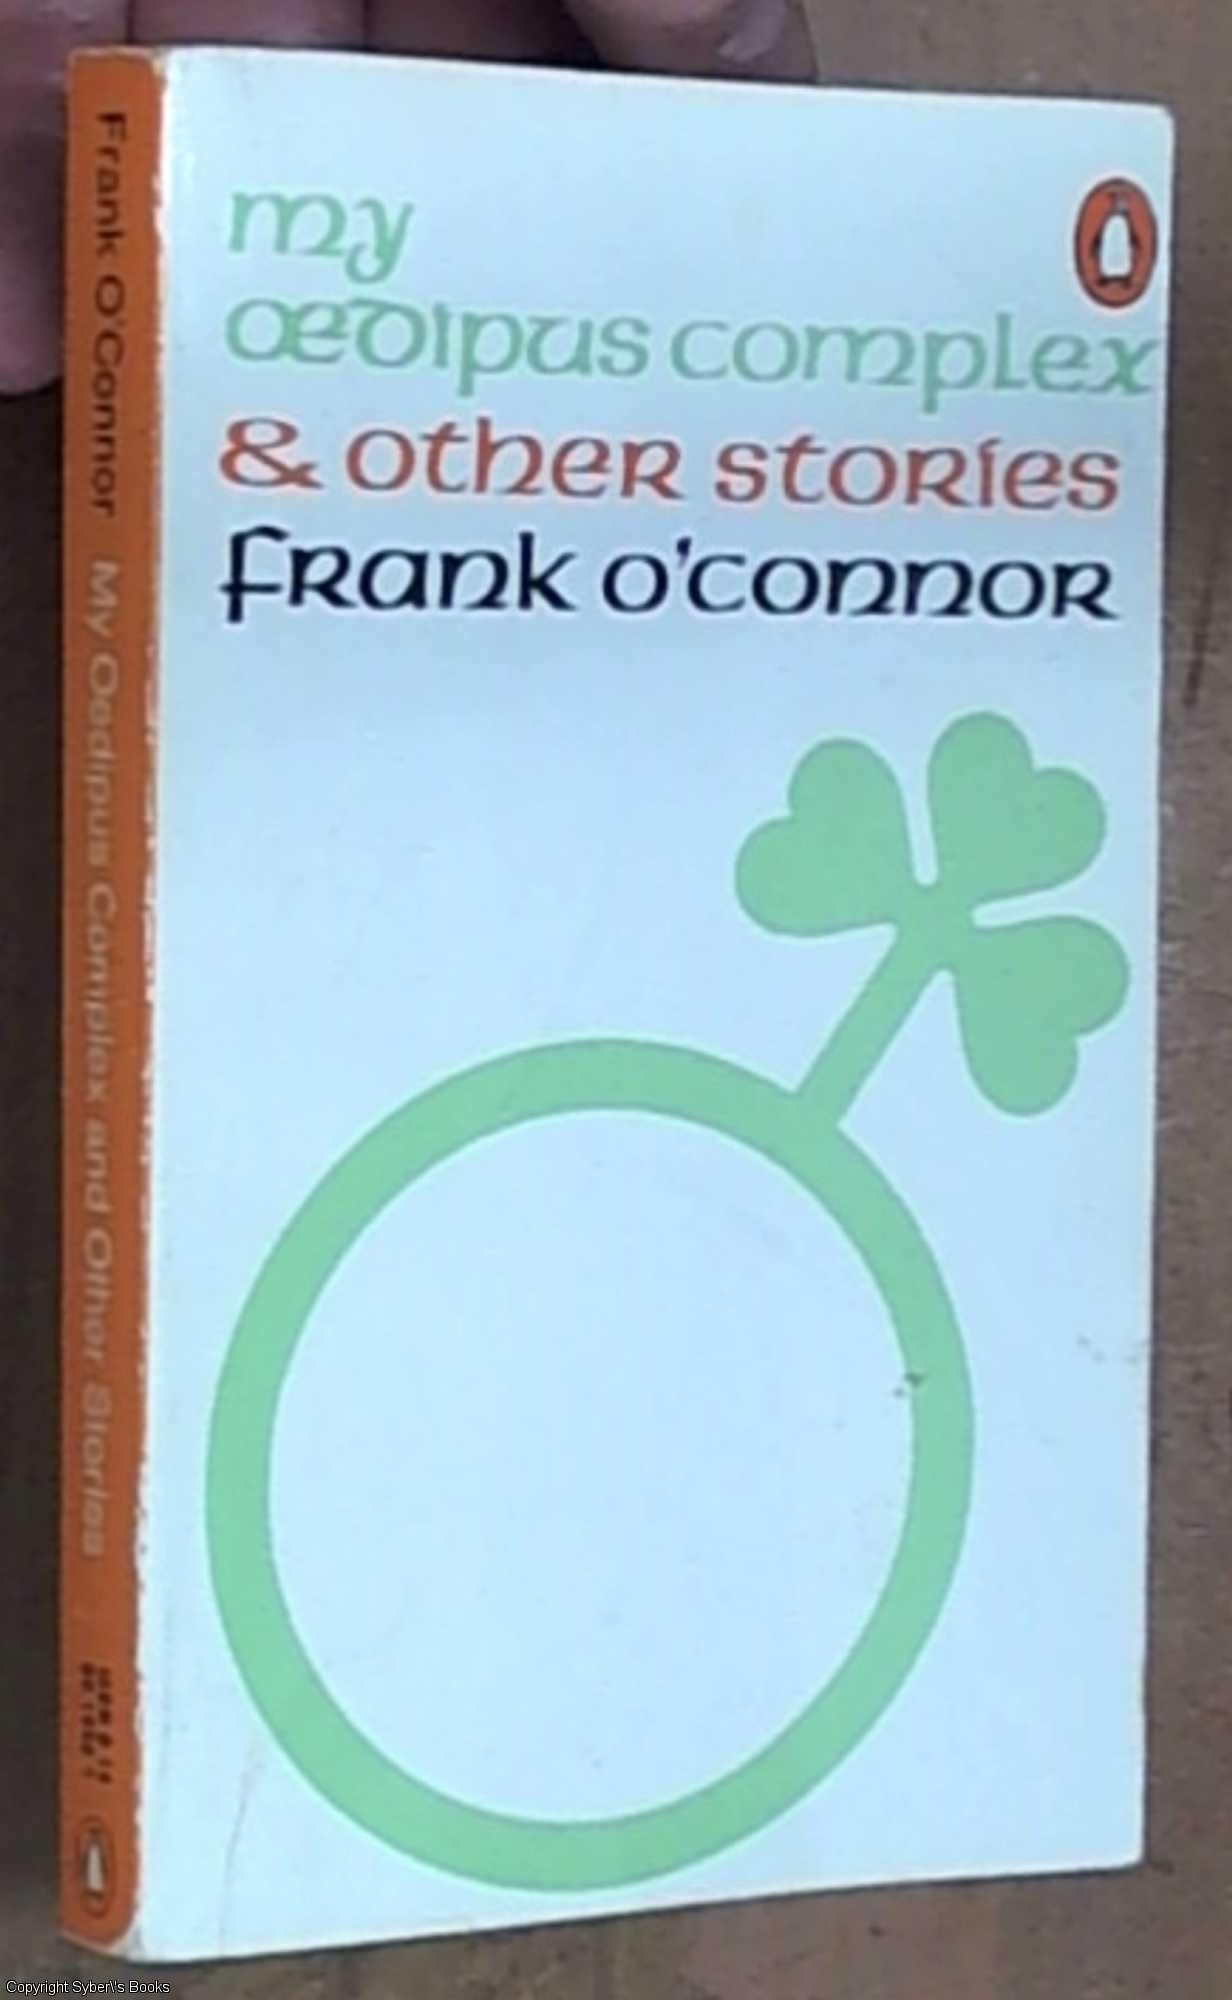 frank o conor oedipus complex Free overcoming adversity papers, essays antigone and oedipus by sophocles overcoming fear in frank o'connor's first confession.